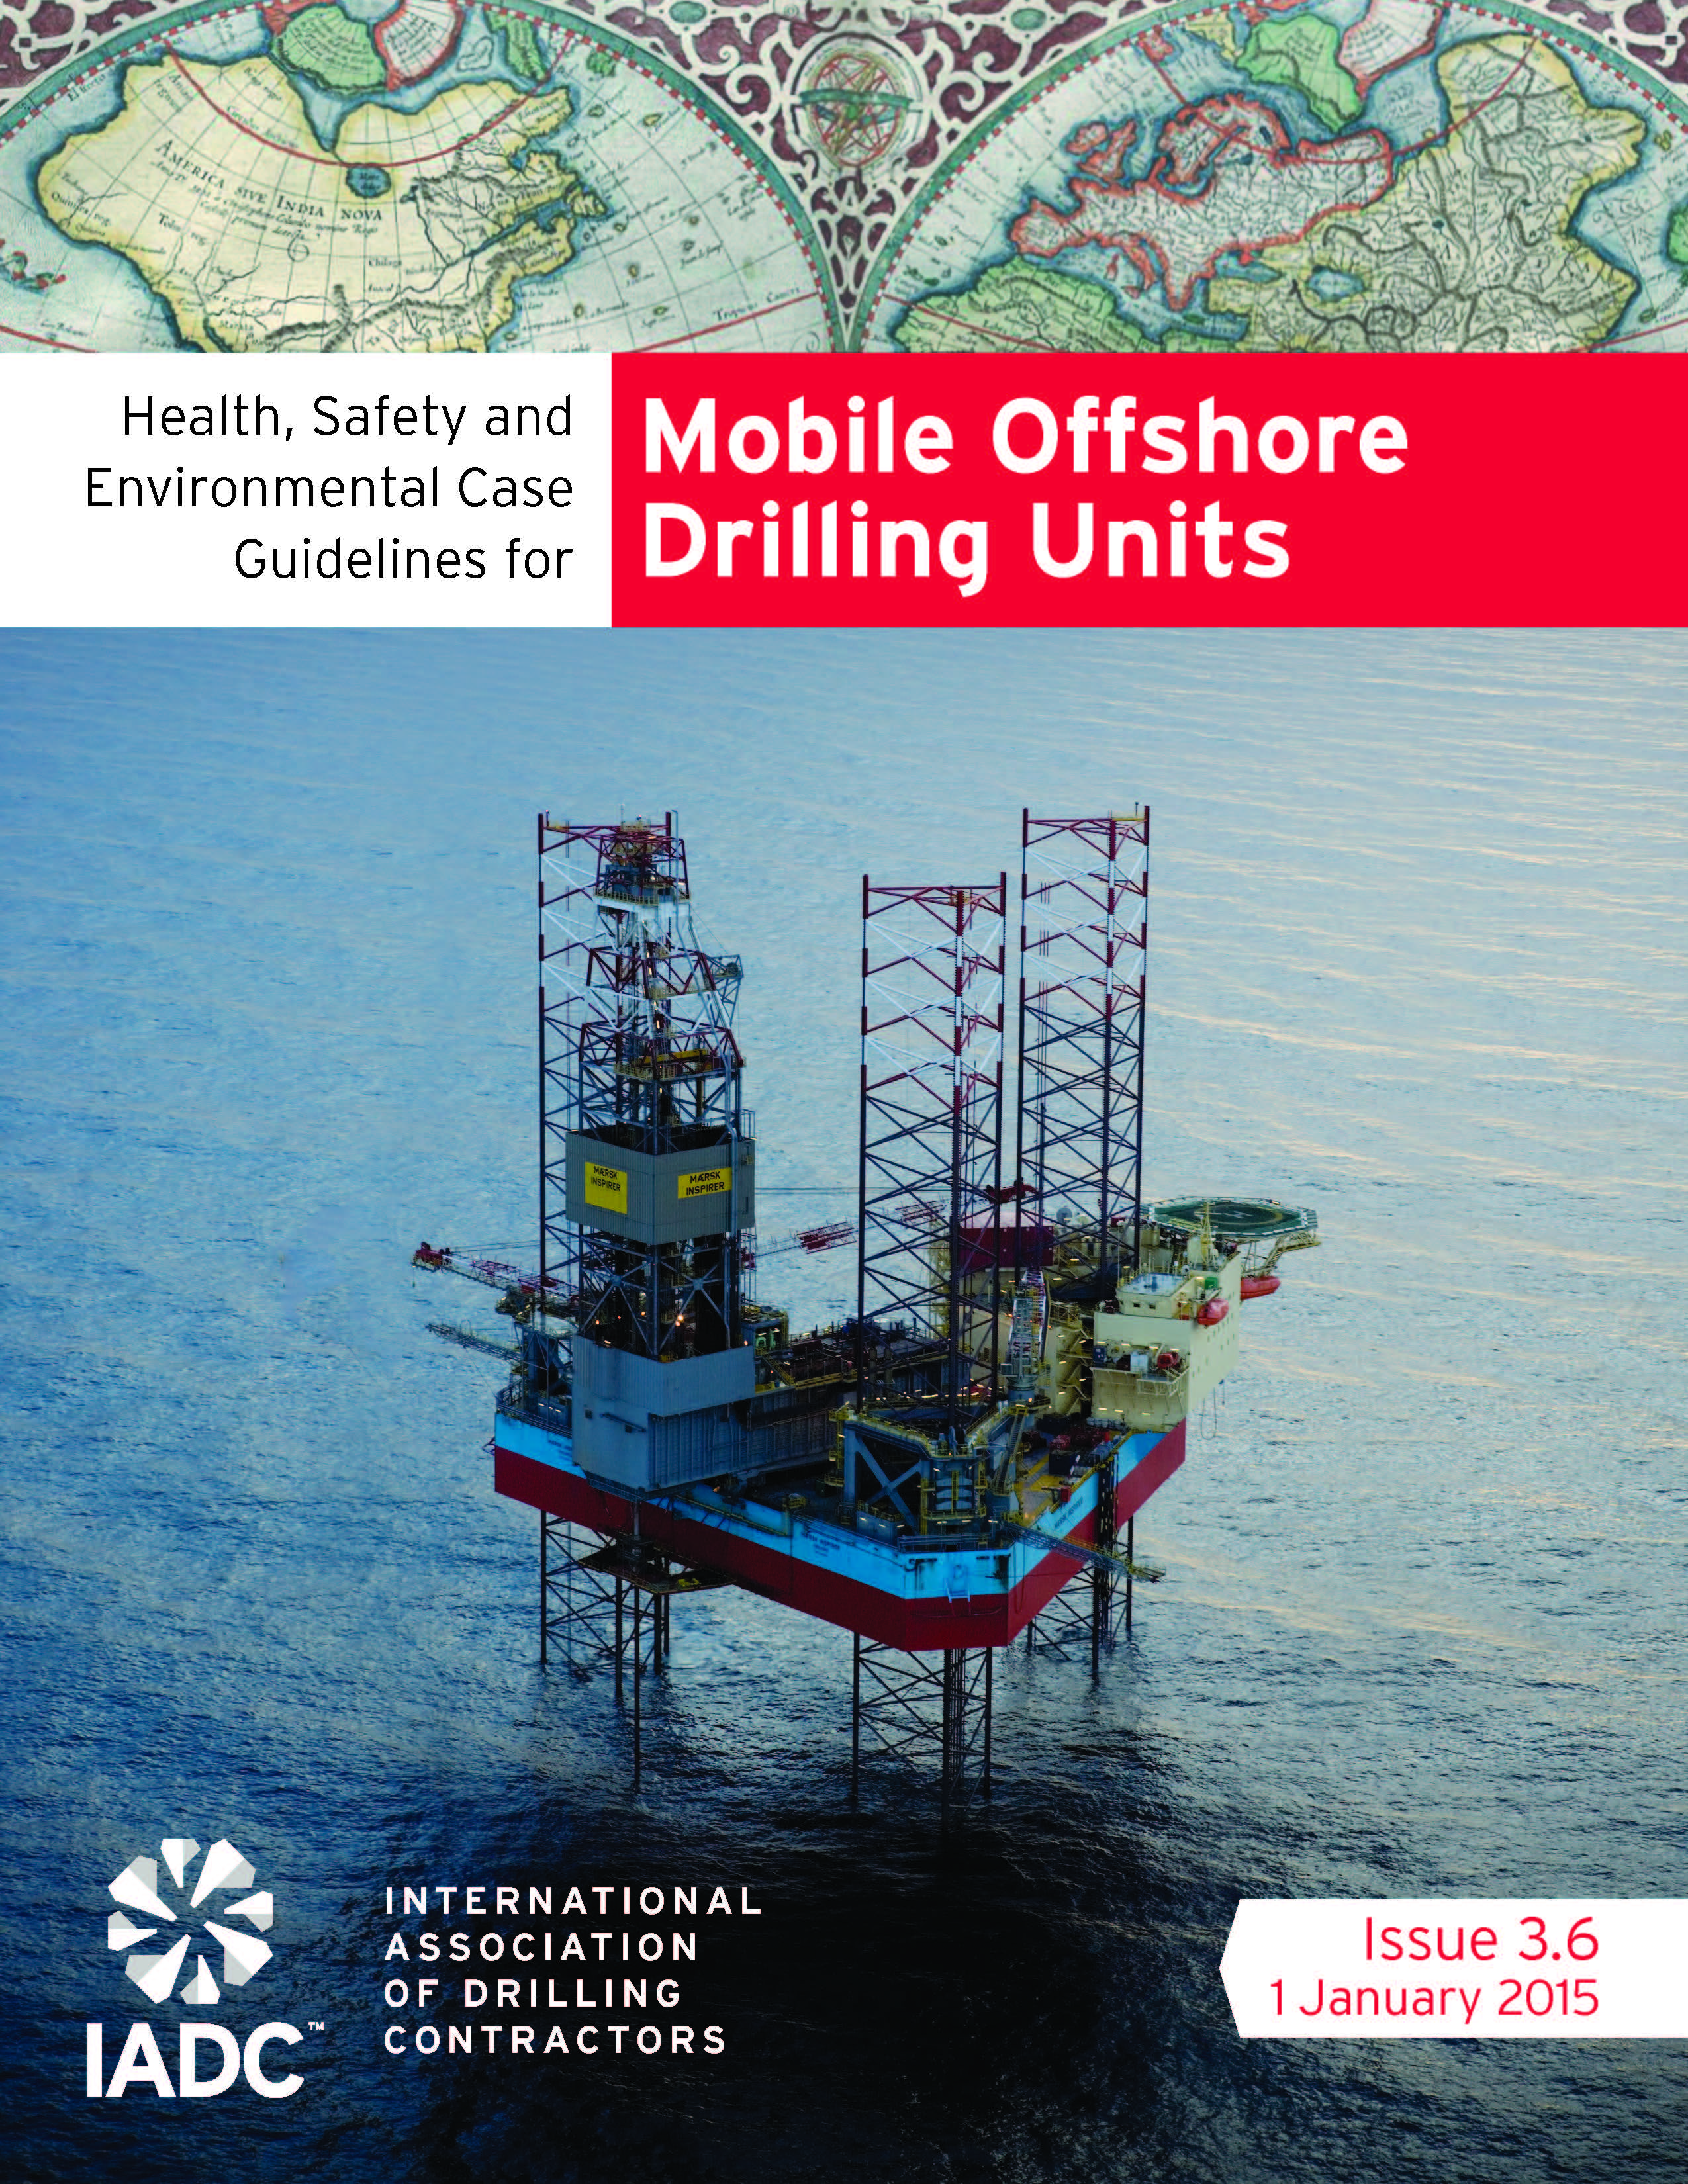 IADC HSE Case Guidelines for Mobile Offshore Drilling Units